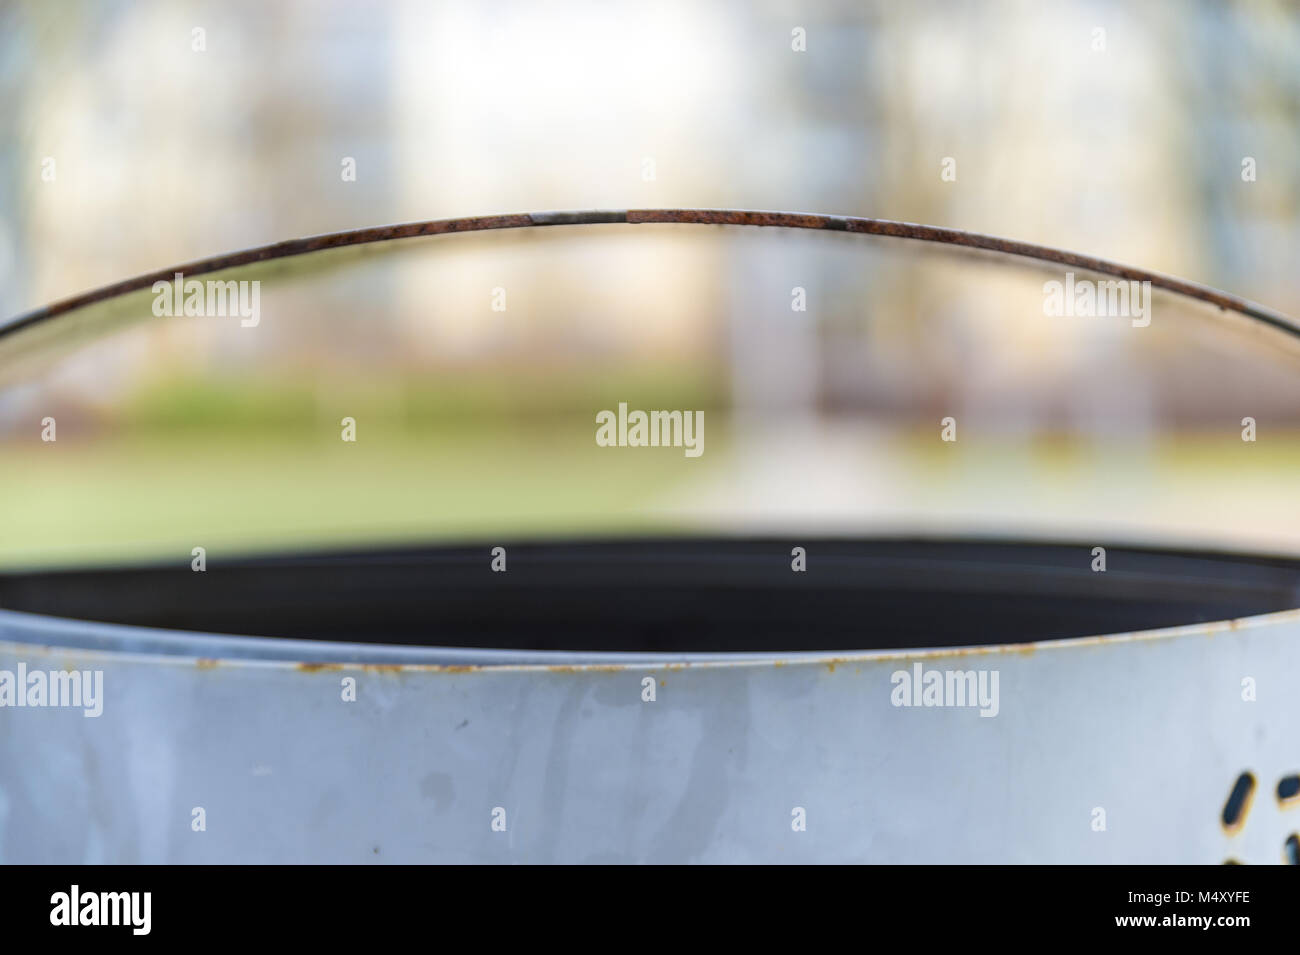 Detailed view of an empty waste container - Stock Image